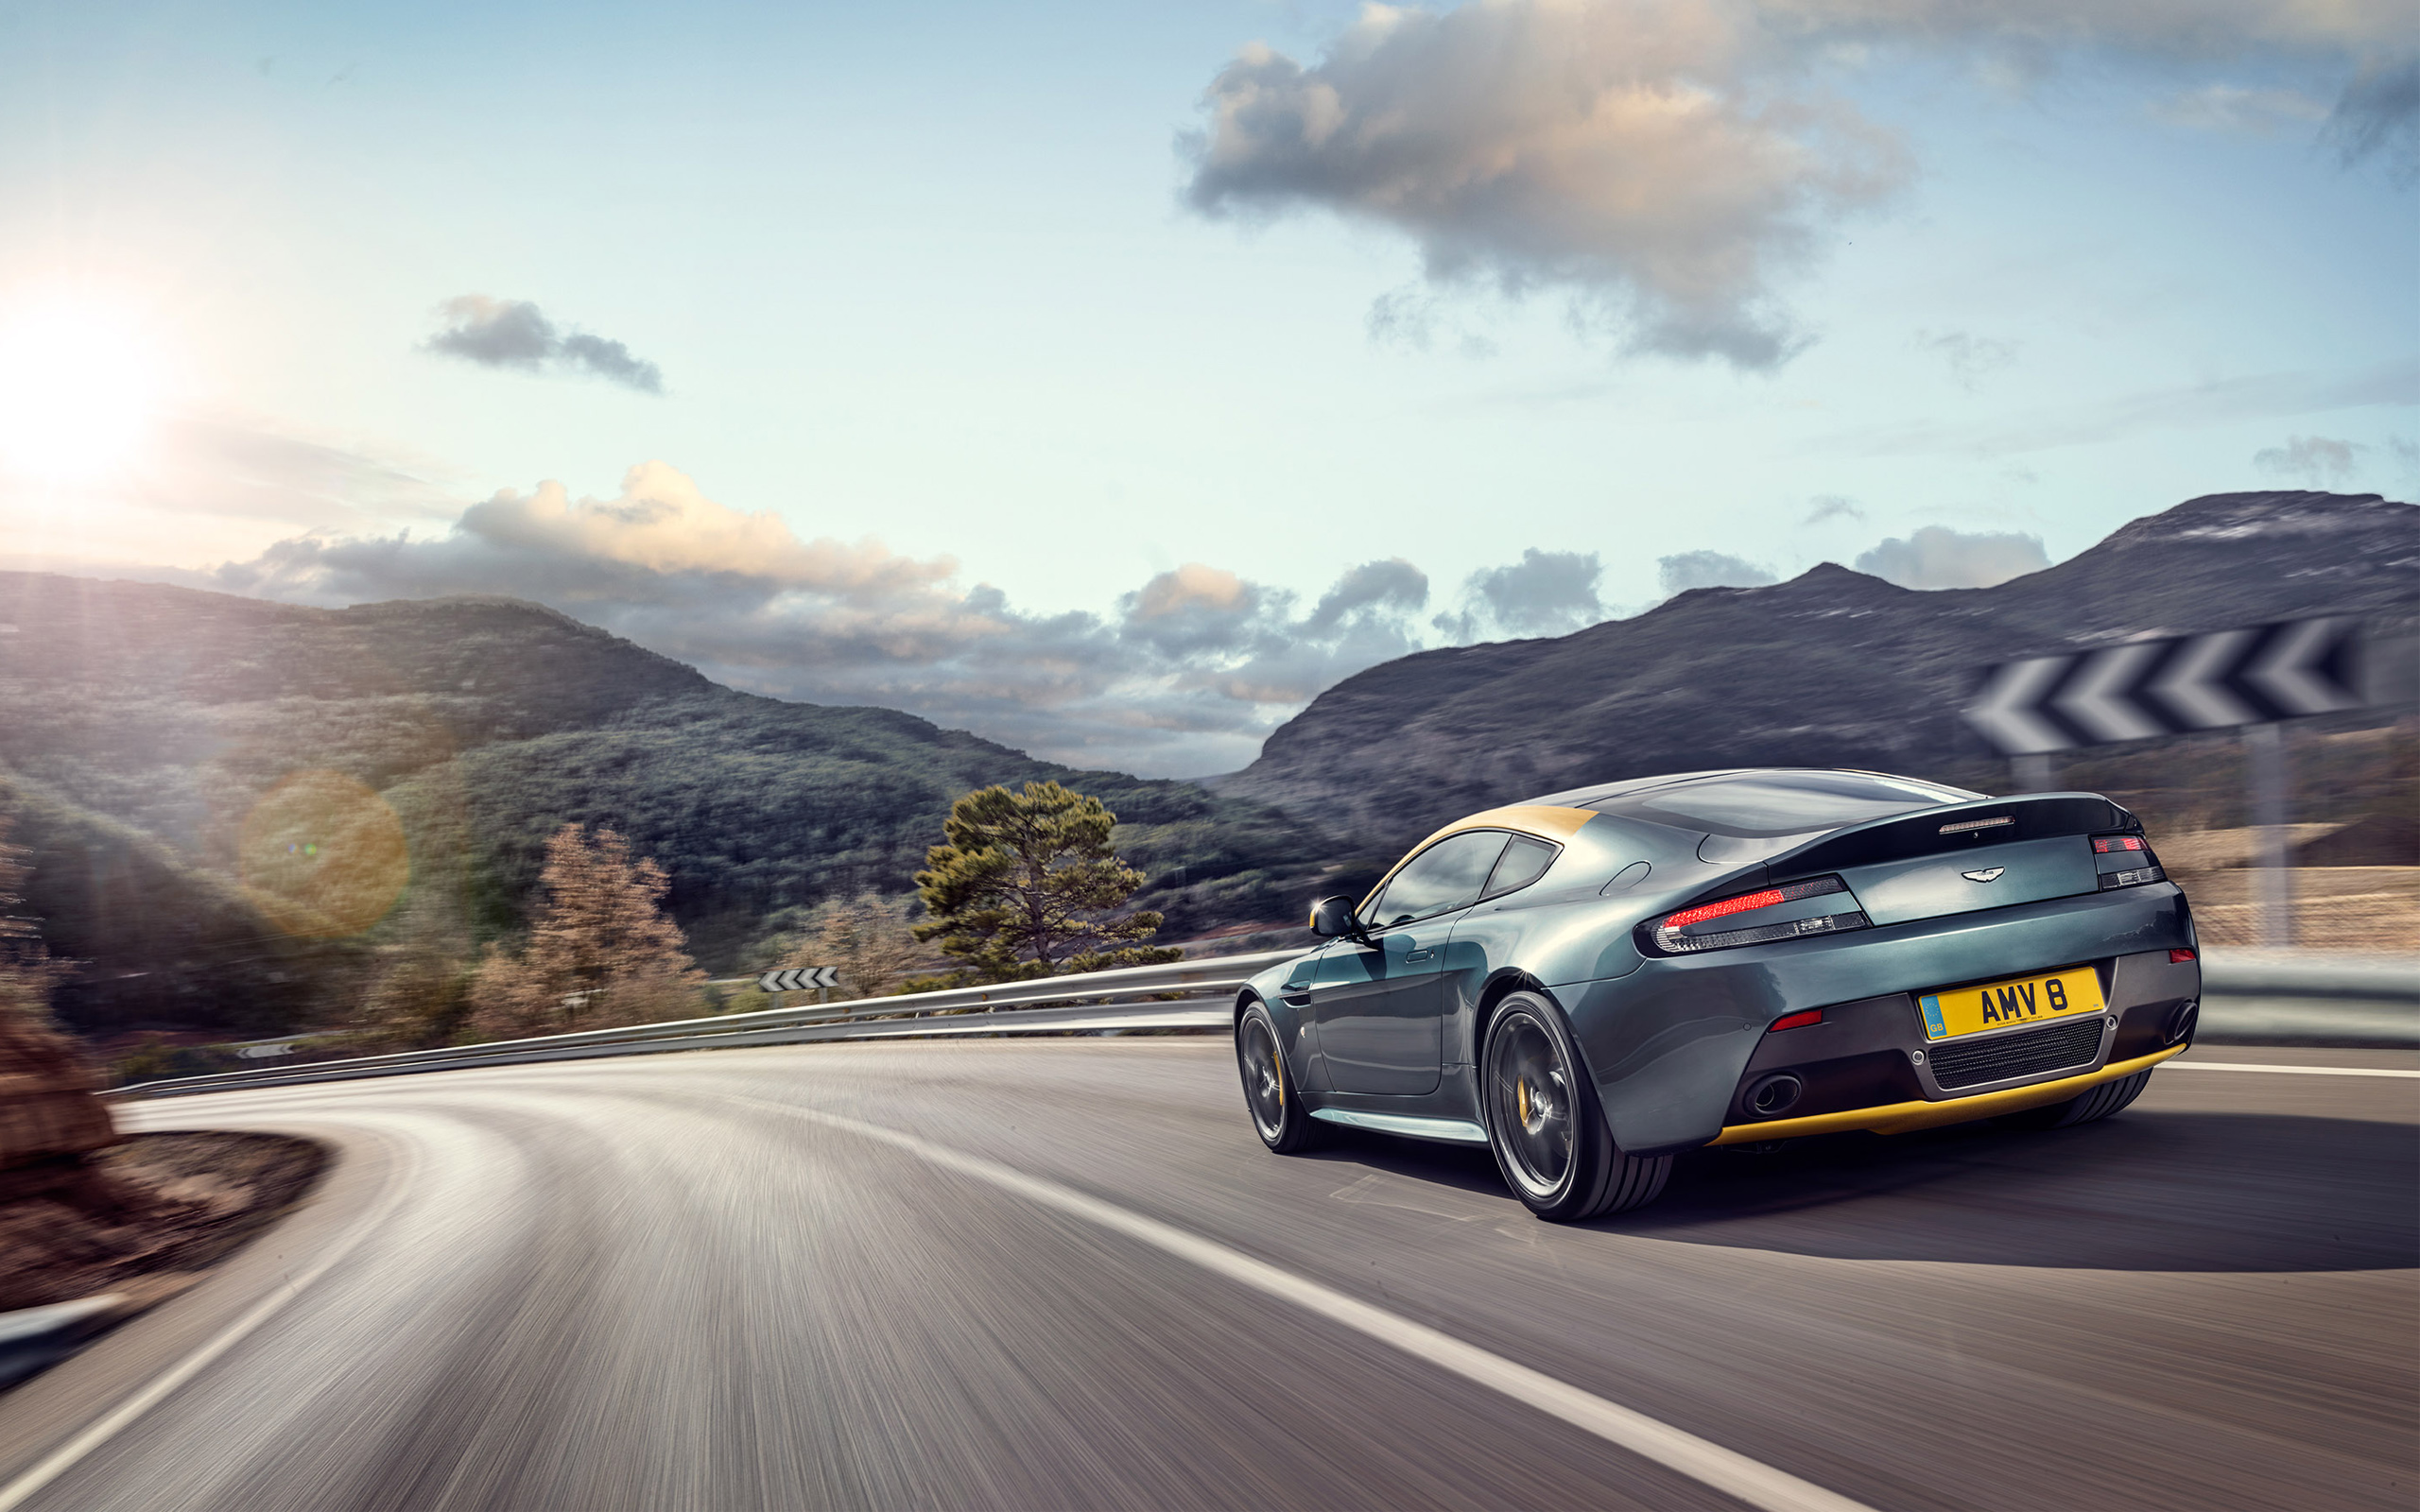 2014 Aston Martin V8 Vantage N430 3 Wallpaper HD Car Wallpapers 2560x1600